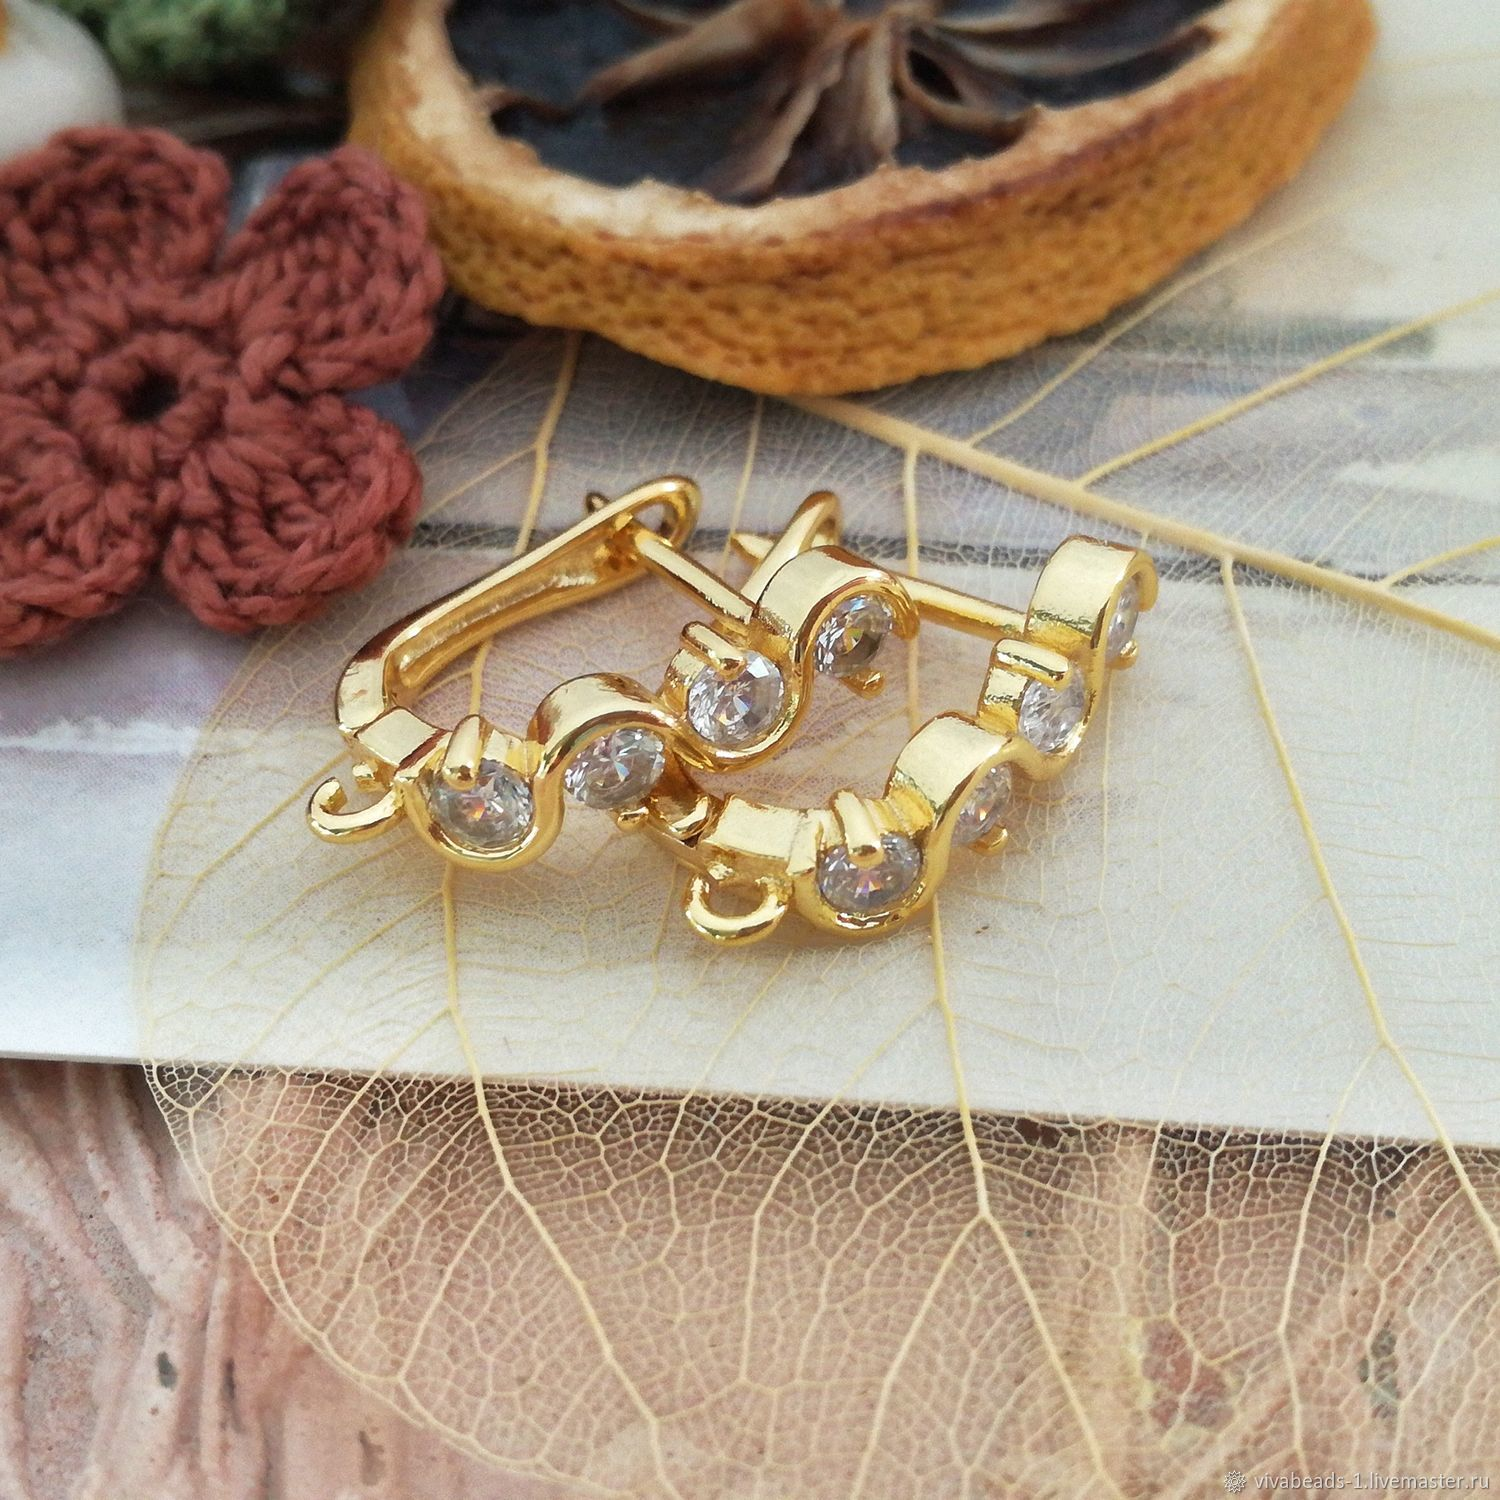 Earrings with zircons, with lock, material brass, color gold, height of 180 mm (including loops) (Ref. Three thousand sixty nine)